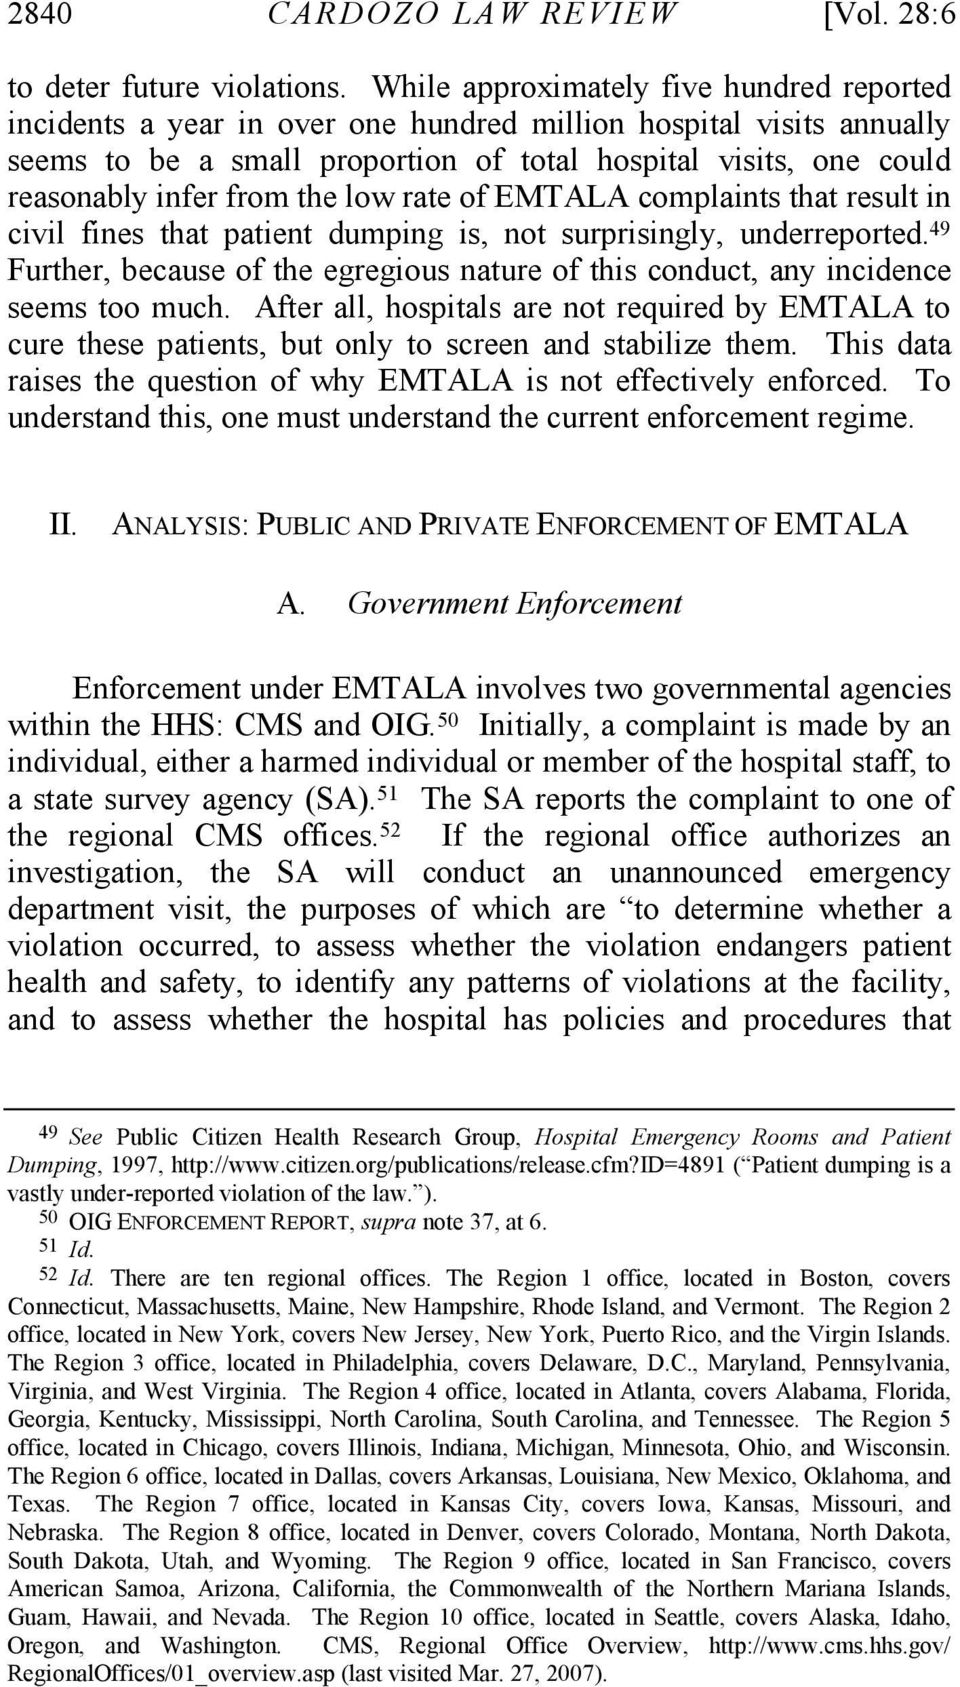 from the low rate of EMTALA complaints that result in civil fines that patient dumping is, not surprisingly, underreported.